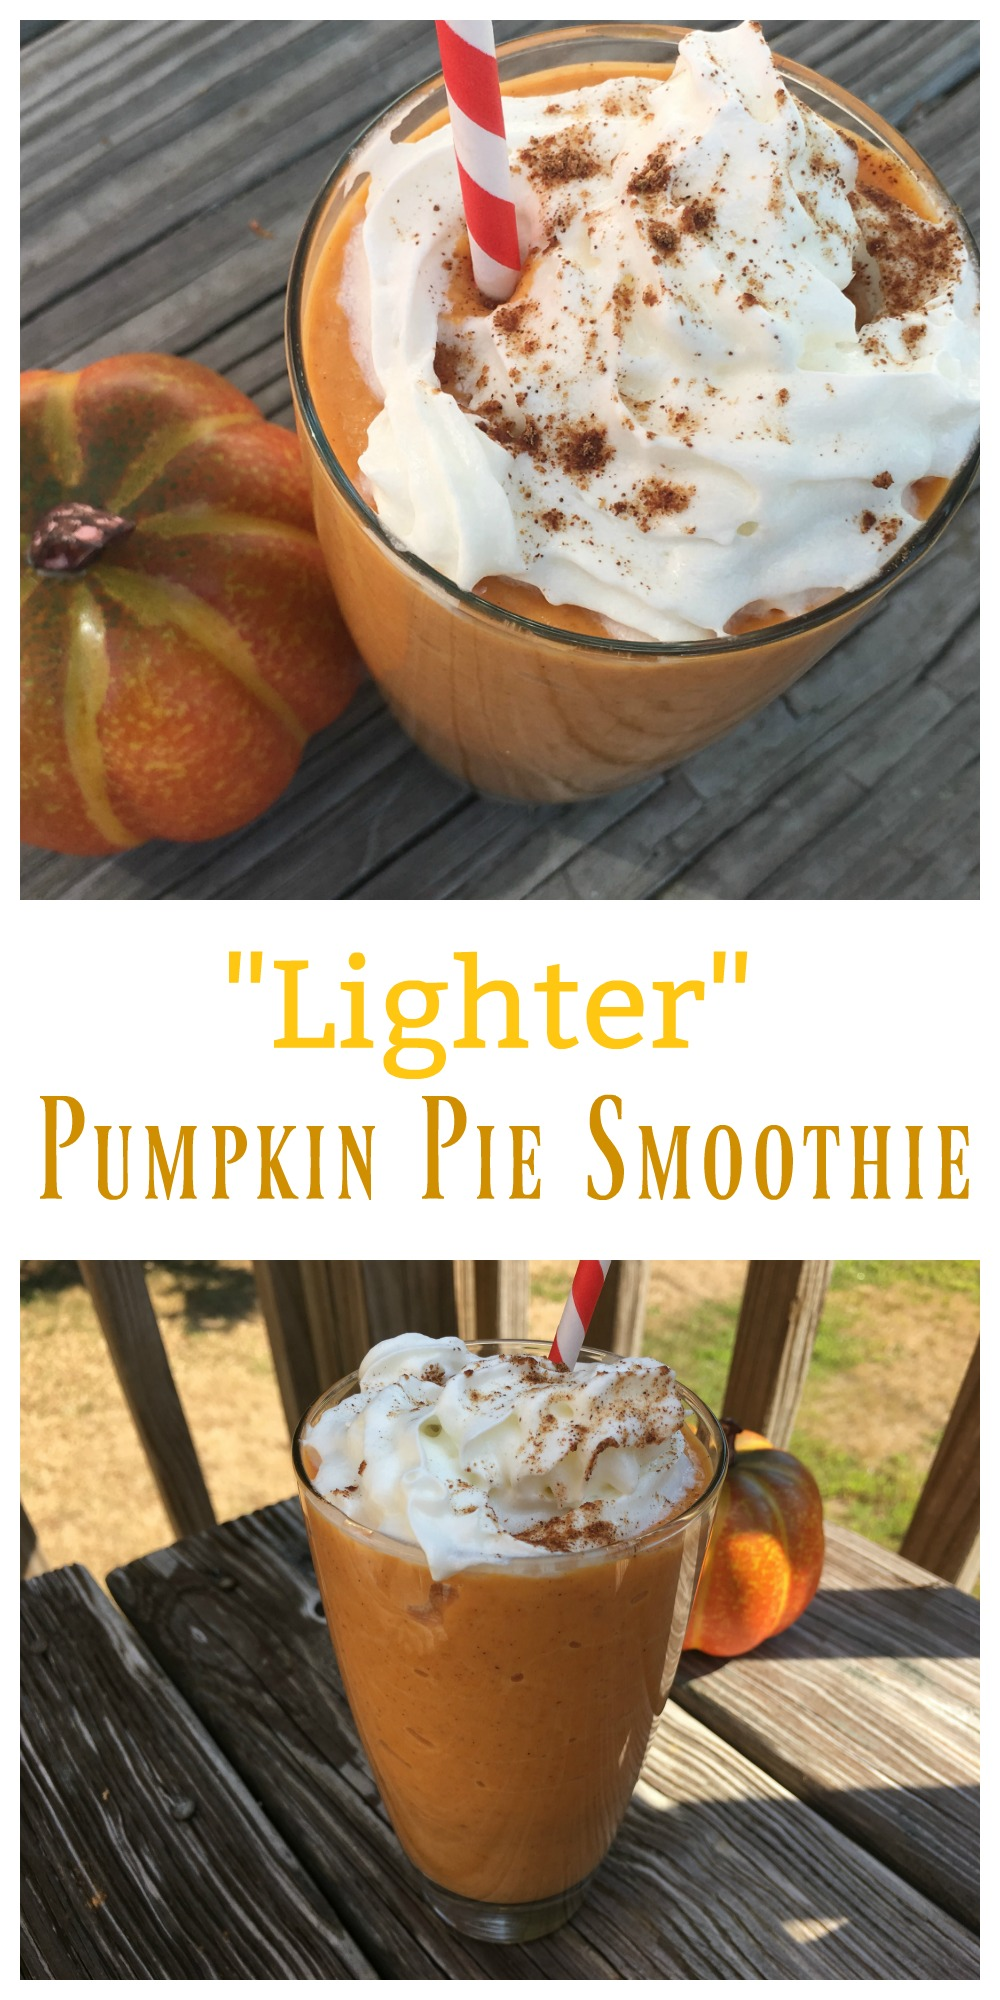 "If you are a pumpkin lover, try a delicious ""Lighter"" Pumpkin Pie Smoothie! It's filling, tasty and ready in just a few minutes."